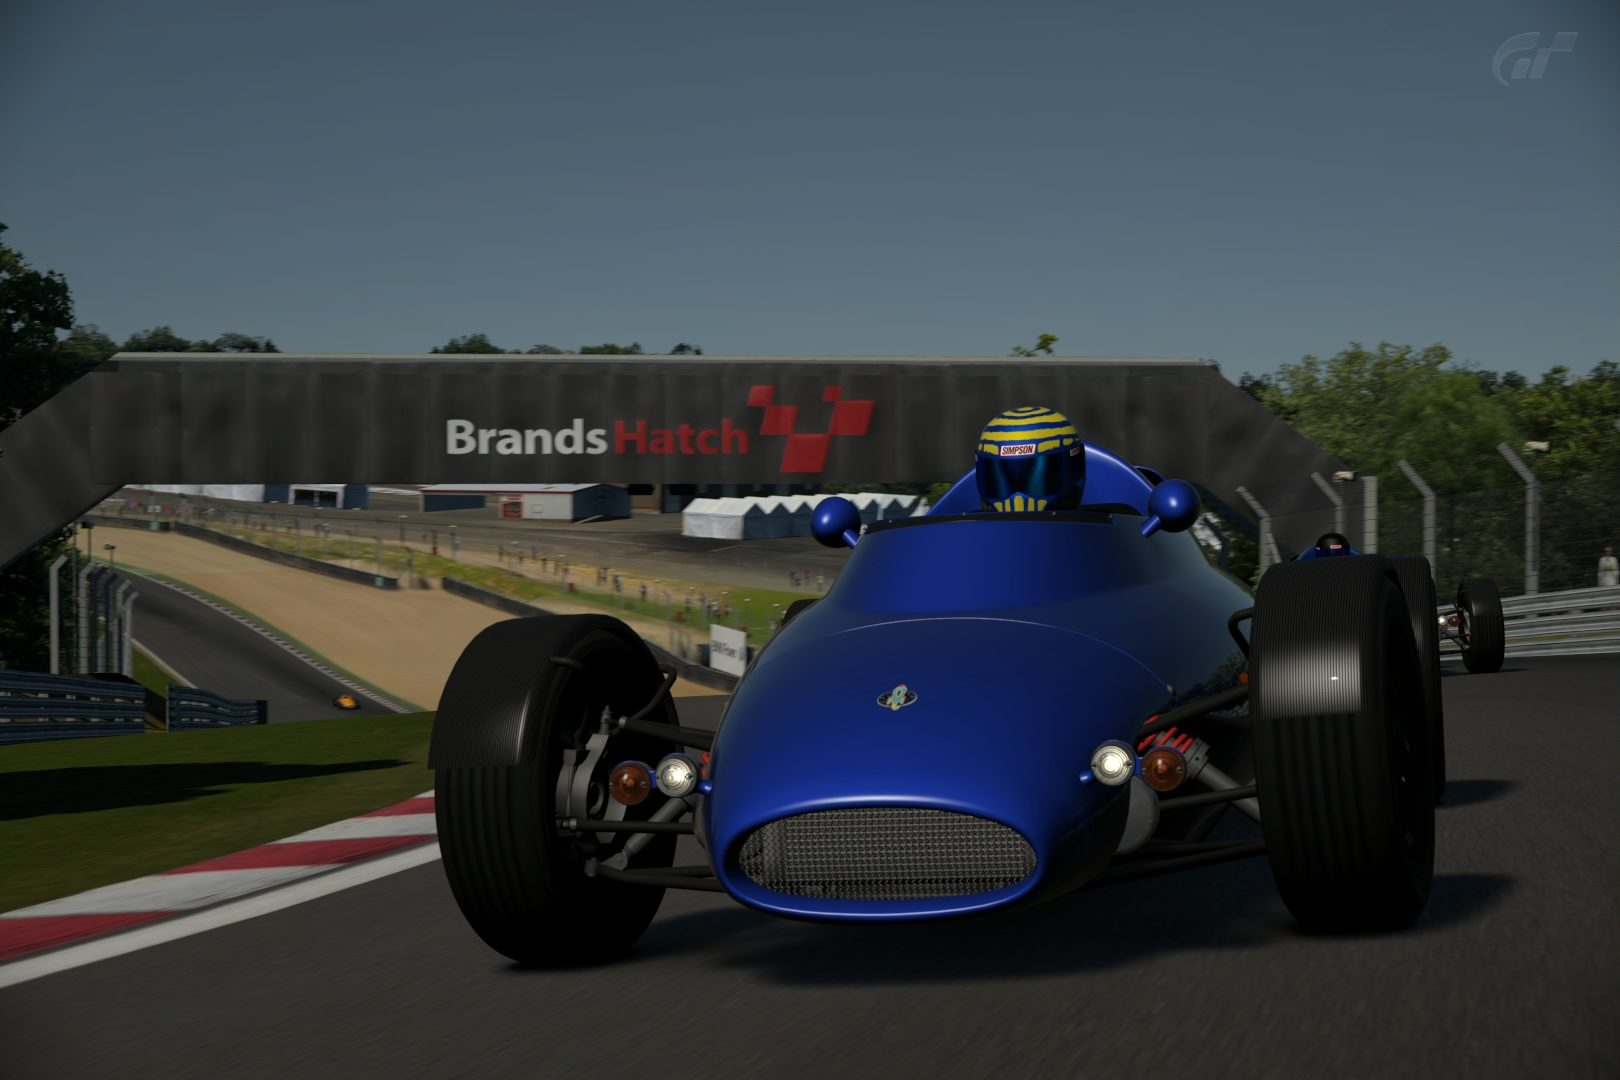 Brands Hatch Grand Prix Circuit.jpg